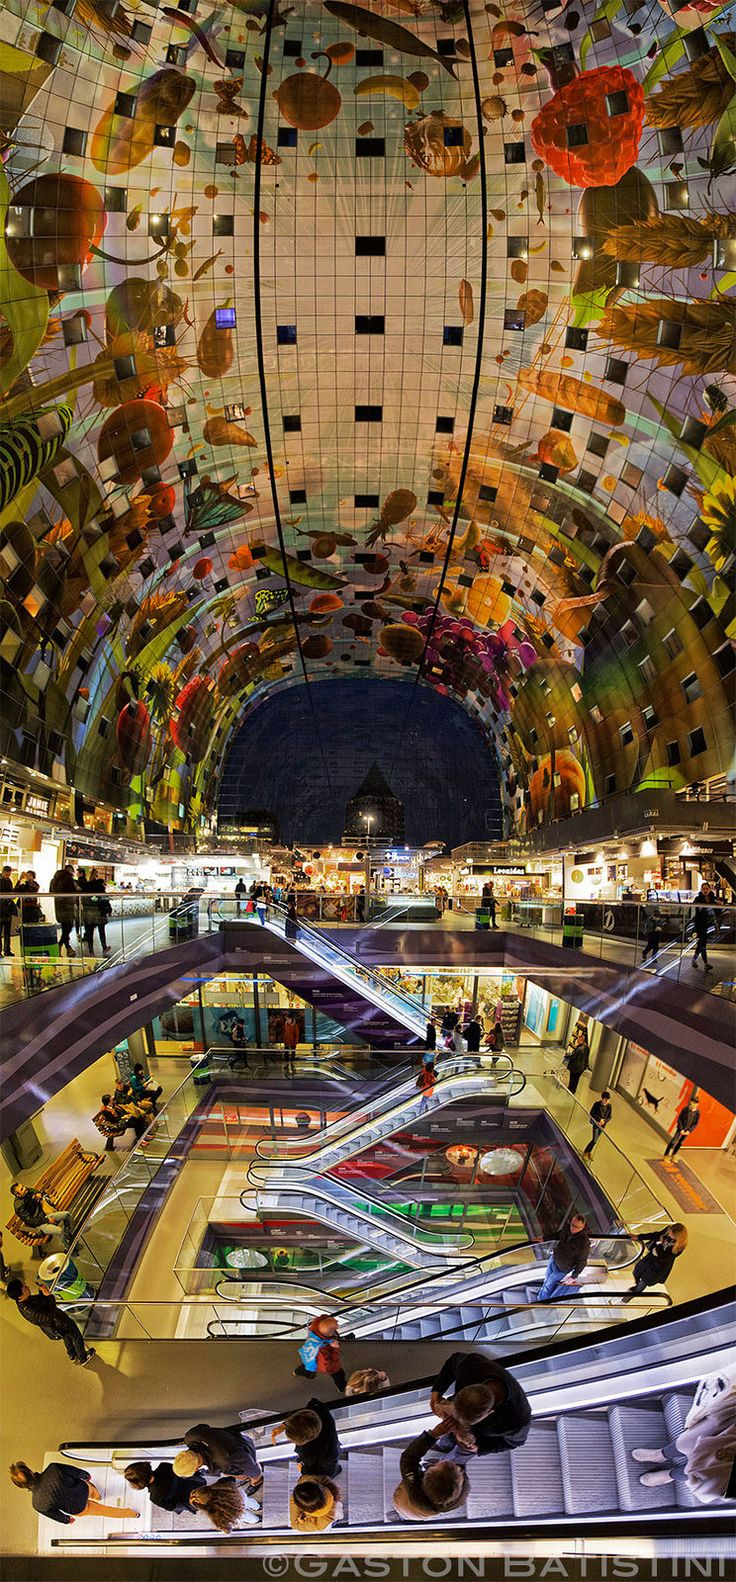 The Markthal, a residential & office building with a market hall underneath, in Rotterdam, Netherlands.